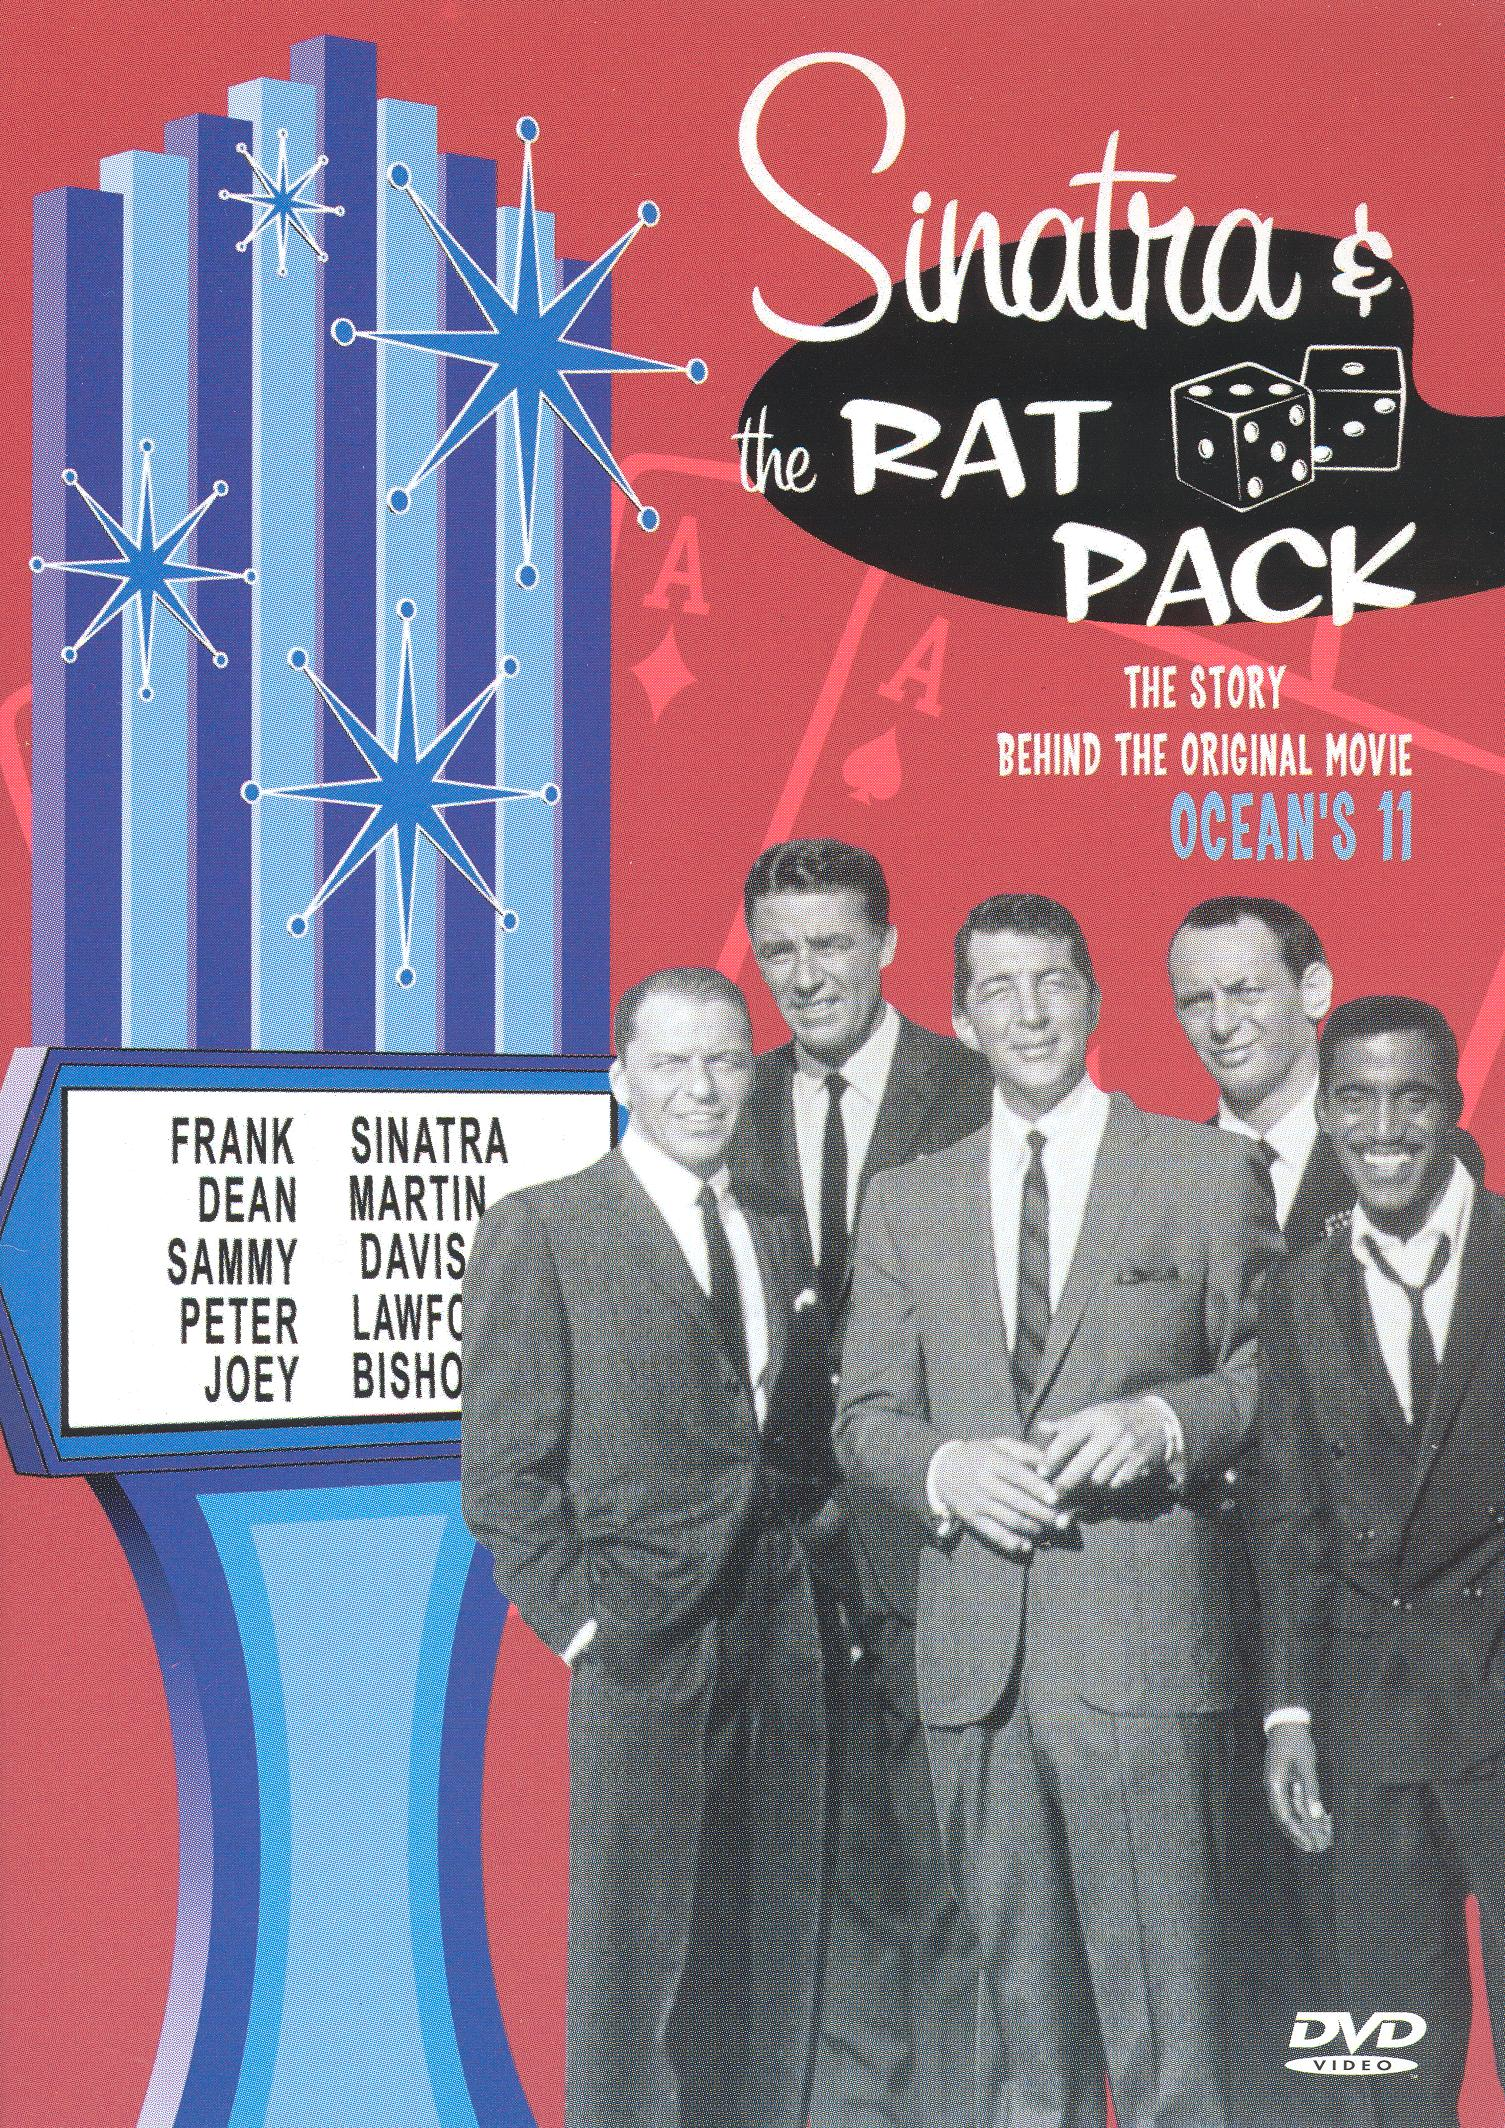 Sinatra & The Rat Pack: The Story Behind the Original Movie Ocean's 11